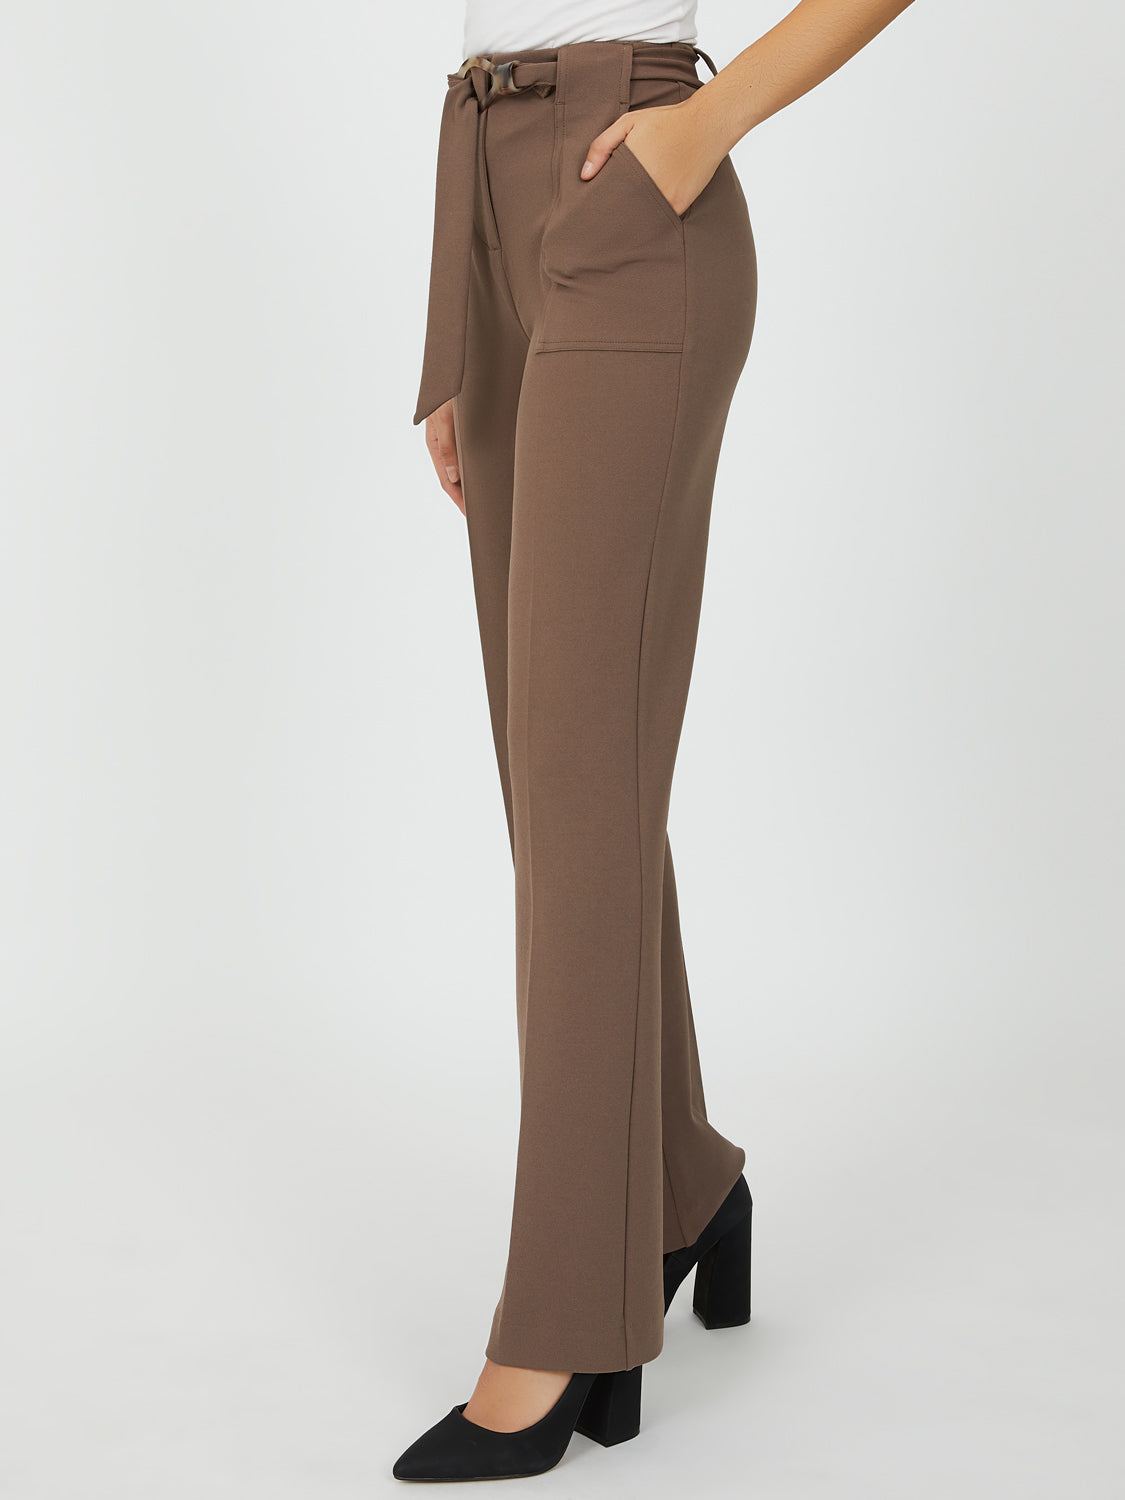 Belted High Waist Wide Leg pants